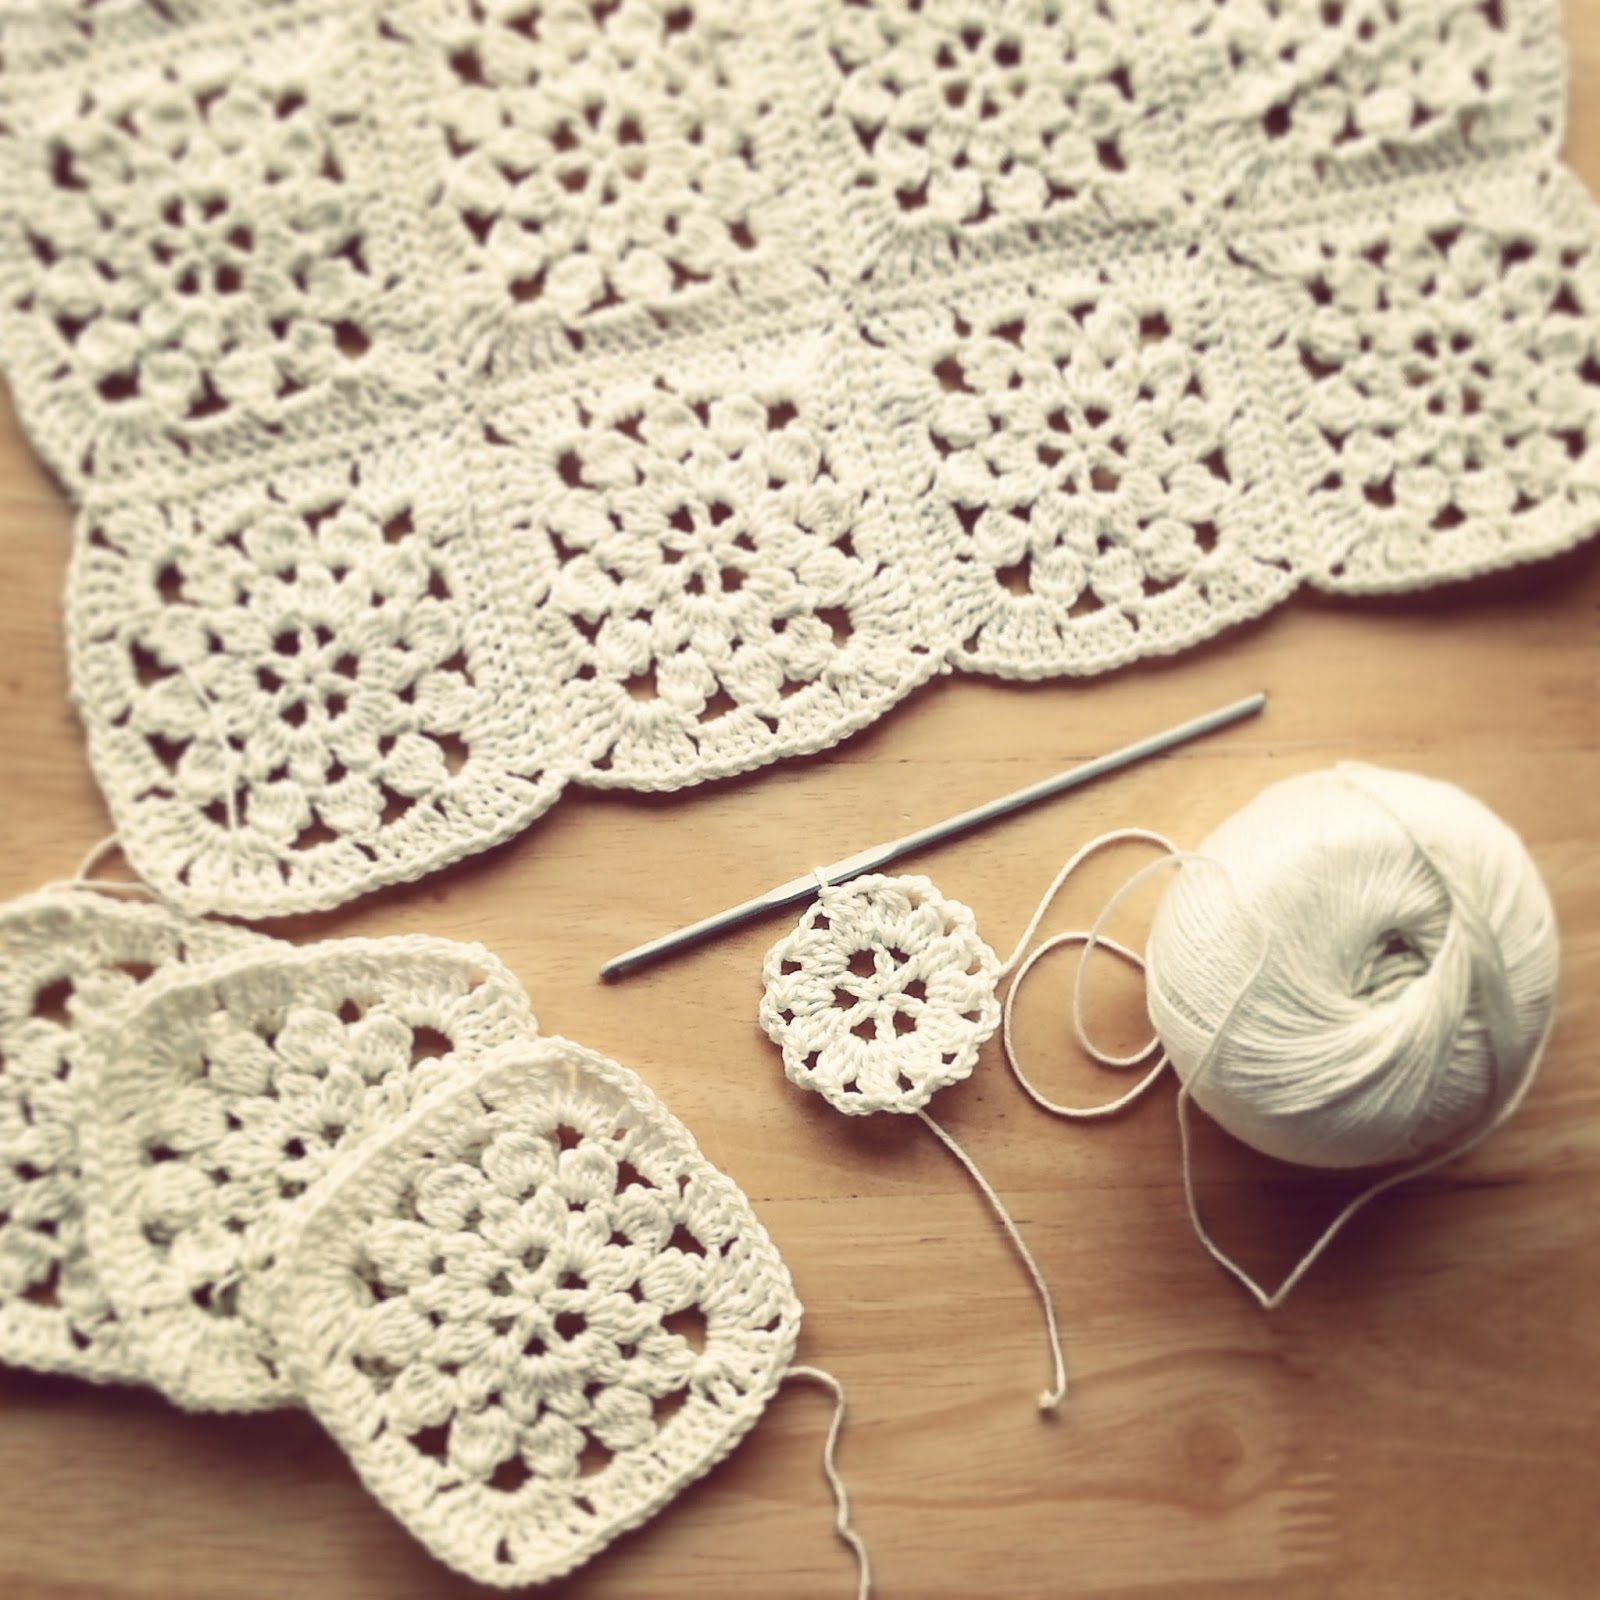 Crocheting Squares : ... tonight- I wanted to show you my latest crochet works in progress